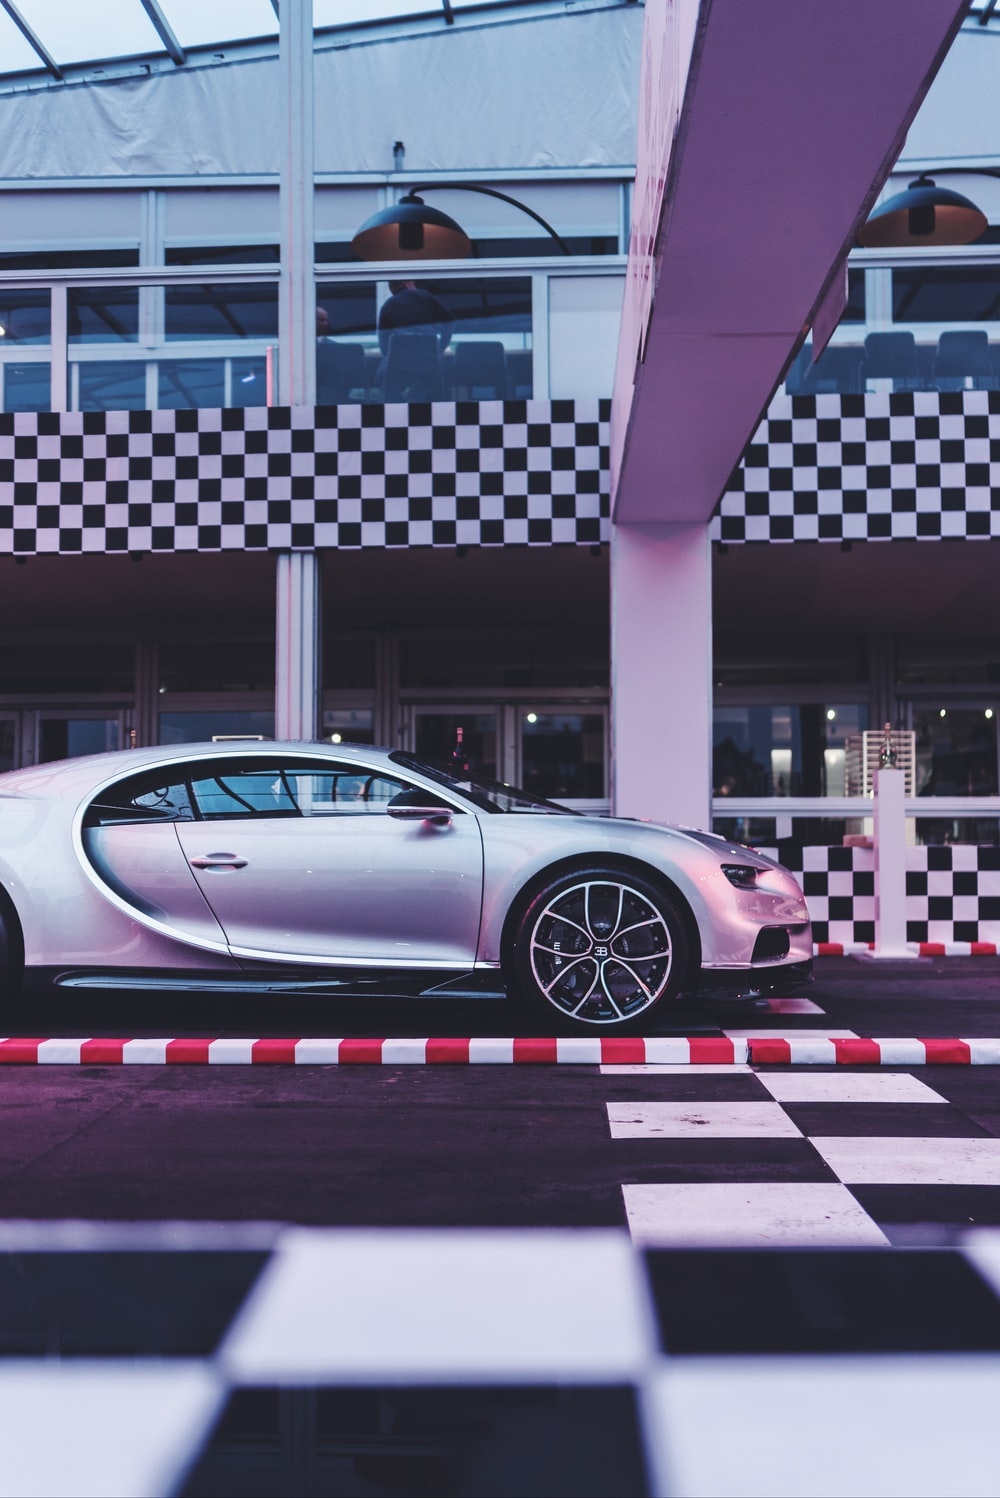 Bugatti Chiron Pictures Download Free Images On Unsplash